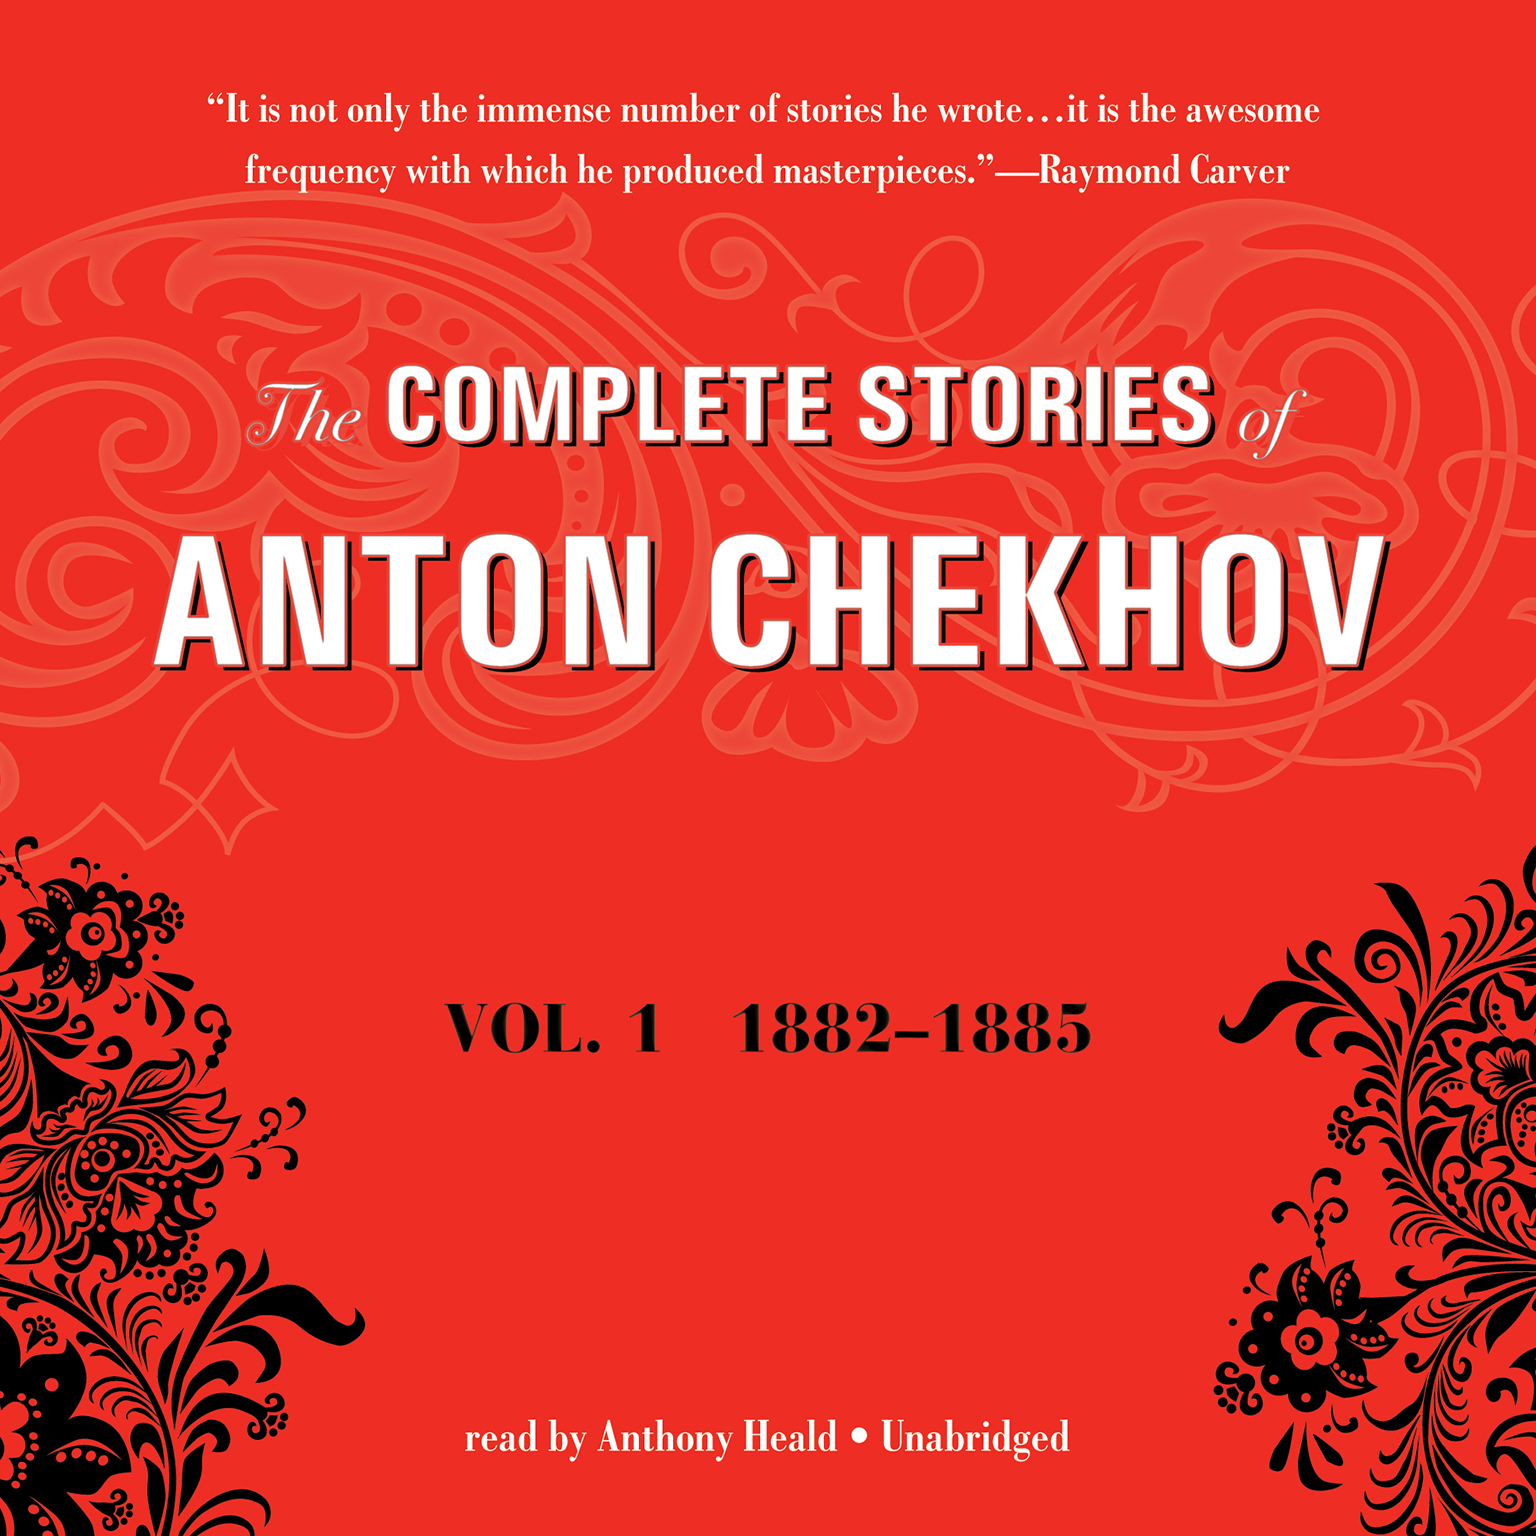 chekhov and carver struggles of